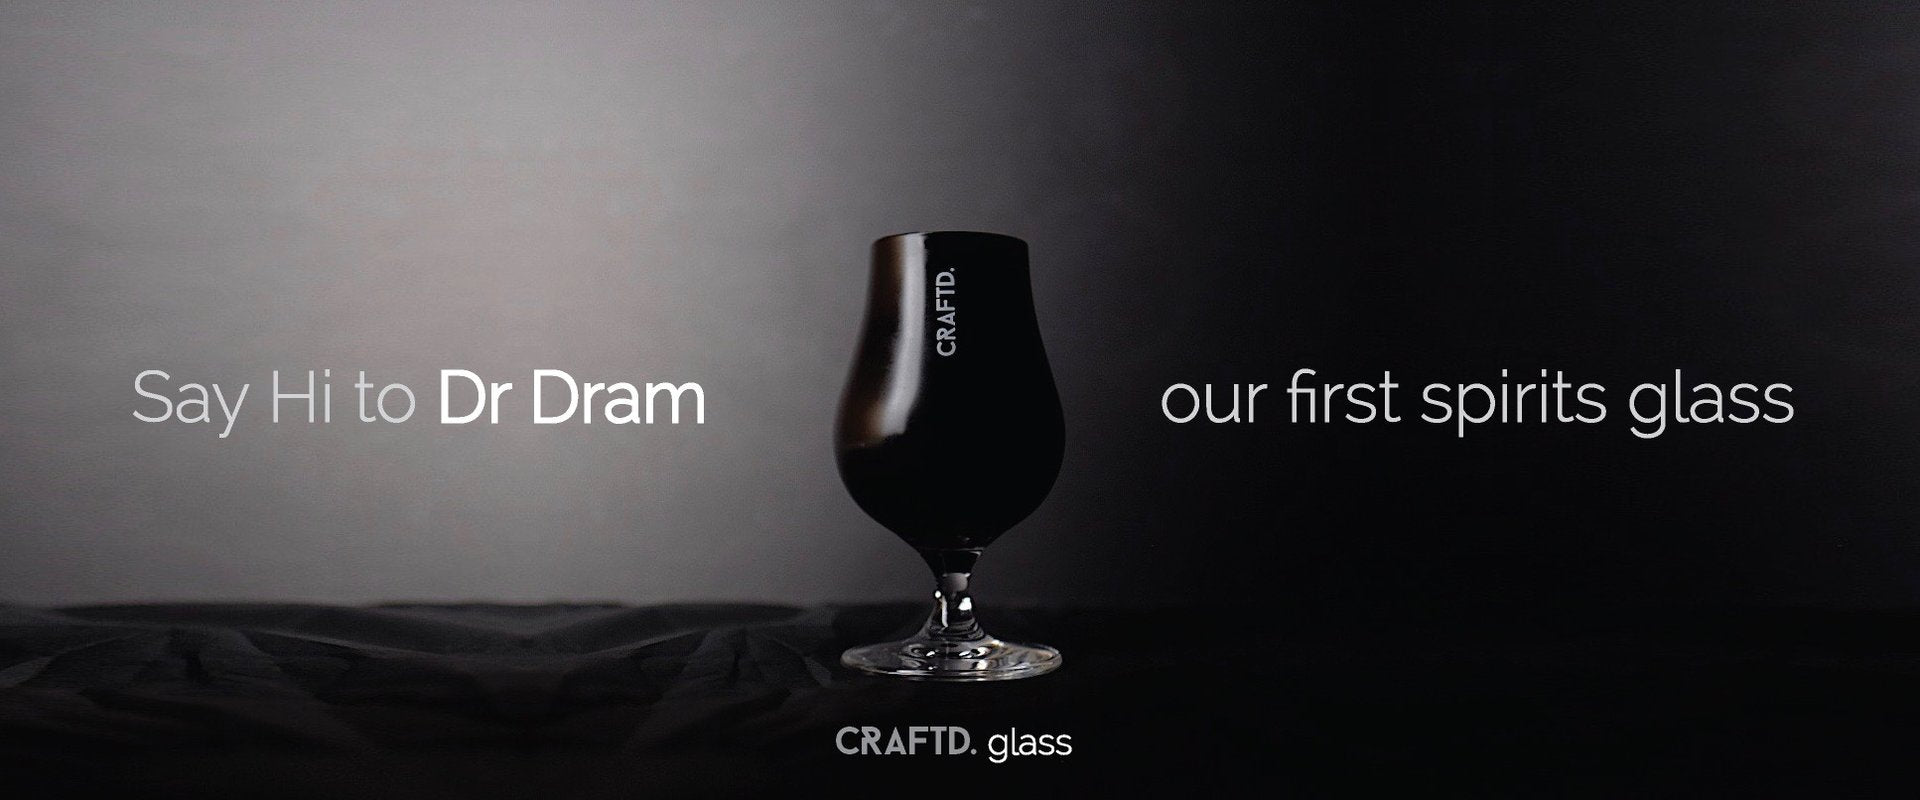 Dr Dram is our first spirits glass.